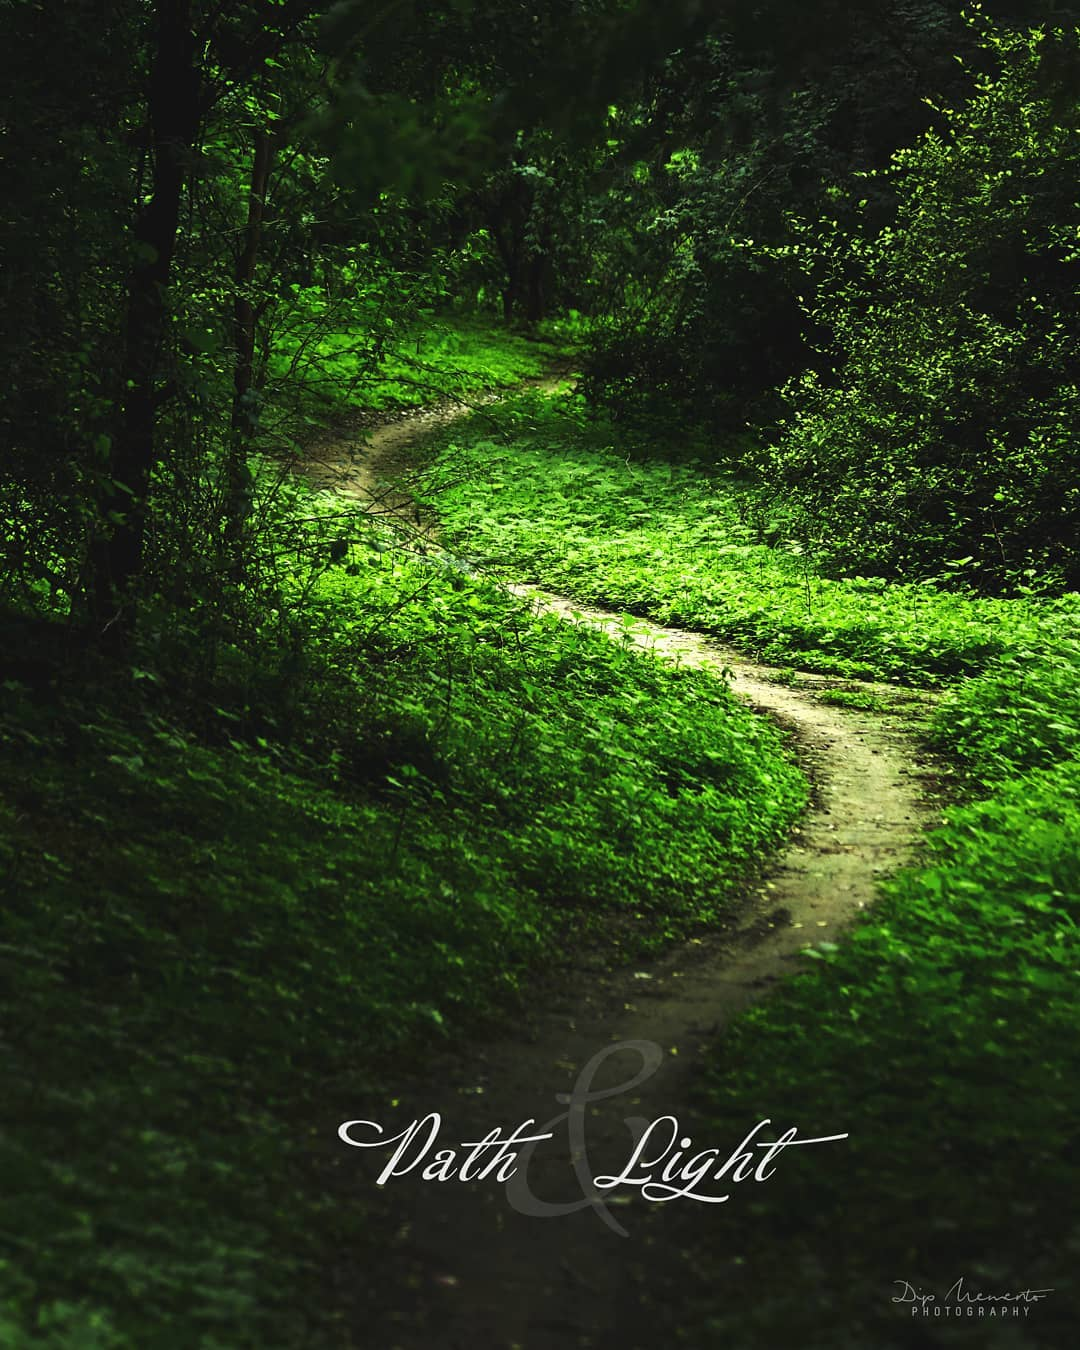 #path & #Light.  #wallpaper click. ❇✴✳❇✴✳❇✴✳❇✴✳❇✴✴ #road #weather #october #spring #morning #nature #ahmedabad #photography #macro #naturephotography #macrophotography #photographer #lens #topshot #waterdrop #50mm #world_photo_shots #yourshotphotographer #natgeo #natgeographic #natgeoyourshot #yourshot #canonmoment  #canon #cpfeatureme #cp #macro  @indiapictures @indian.hobbygraphy @photographers_of_india @indiapictures @indianshutterbugs @indian_photography_hub_ @official_photography_hub @colours.of.india @pixelpanda_india @pixelpanda_india @india.clicks @india_everyday @uniquephotographyclub @itz_mumbai @photographers_of_india